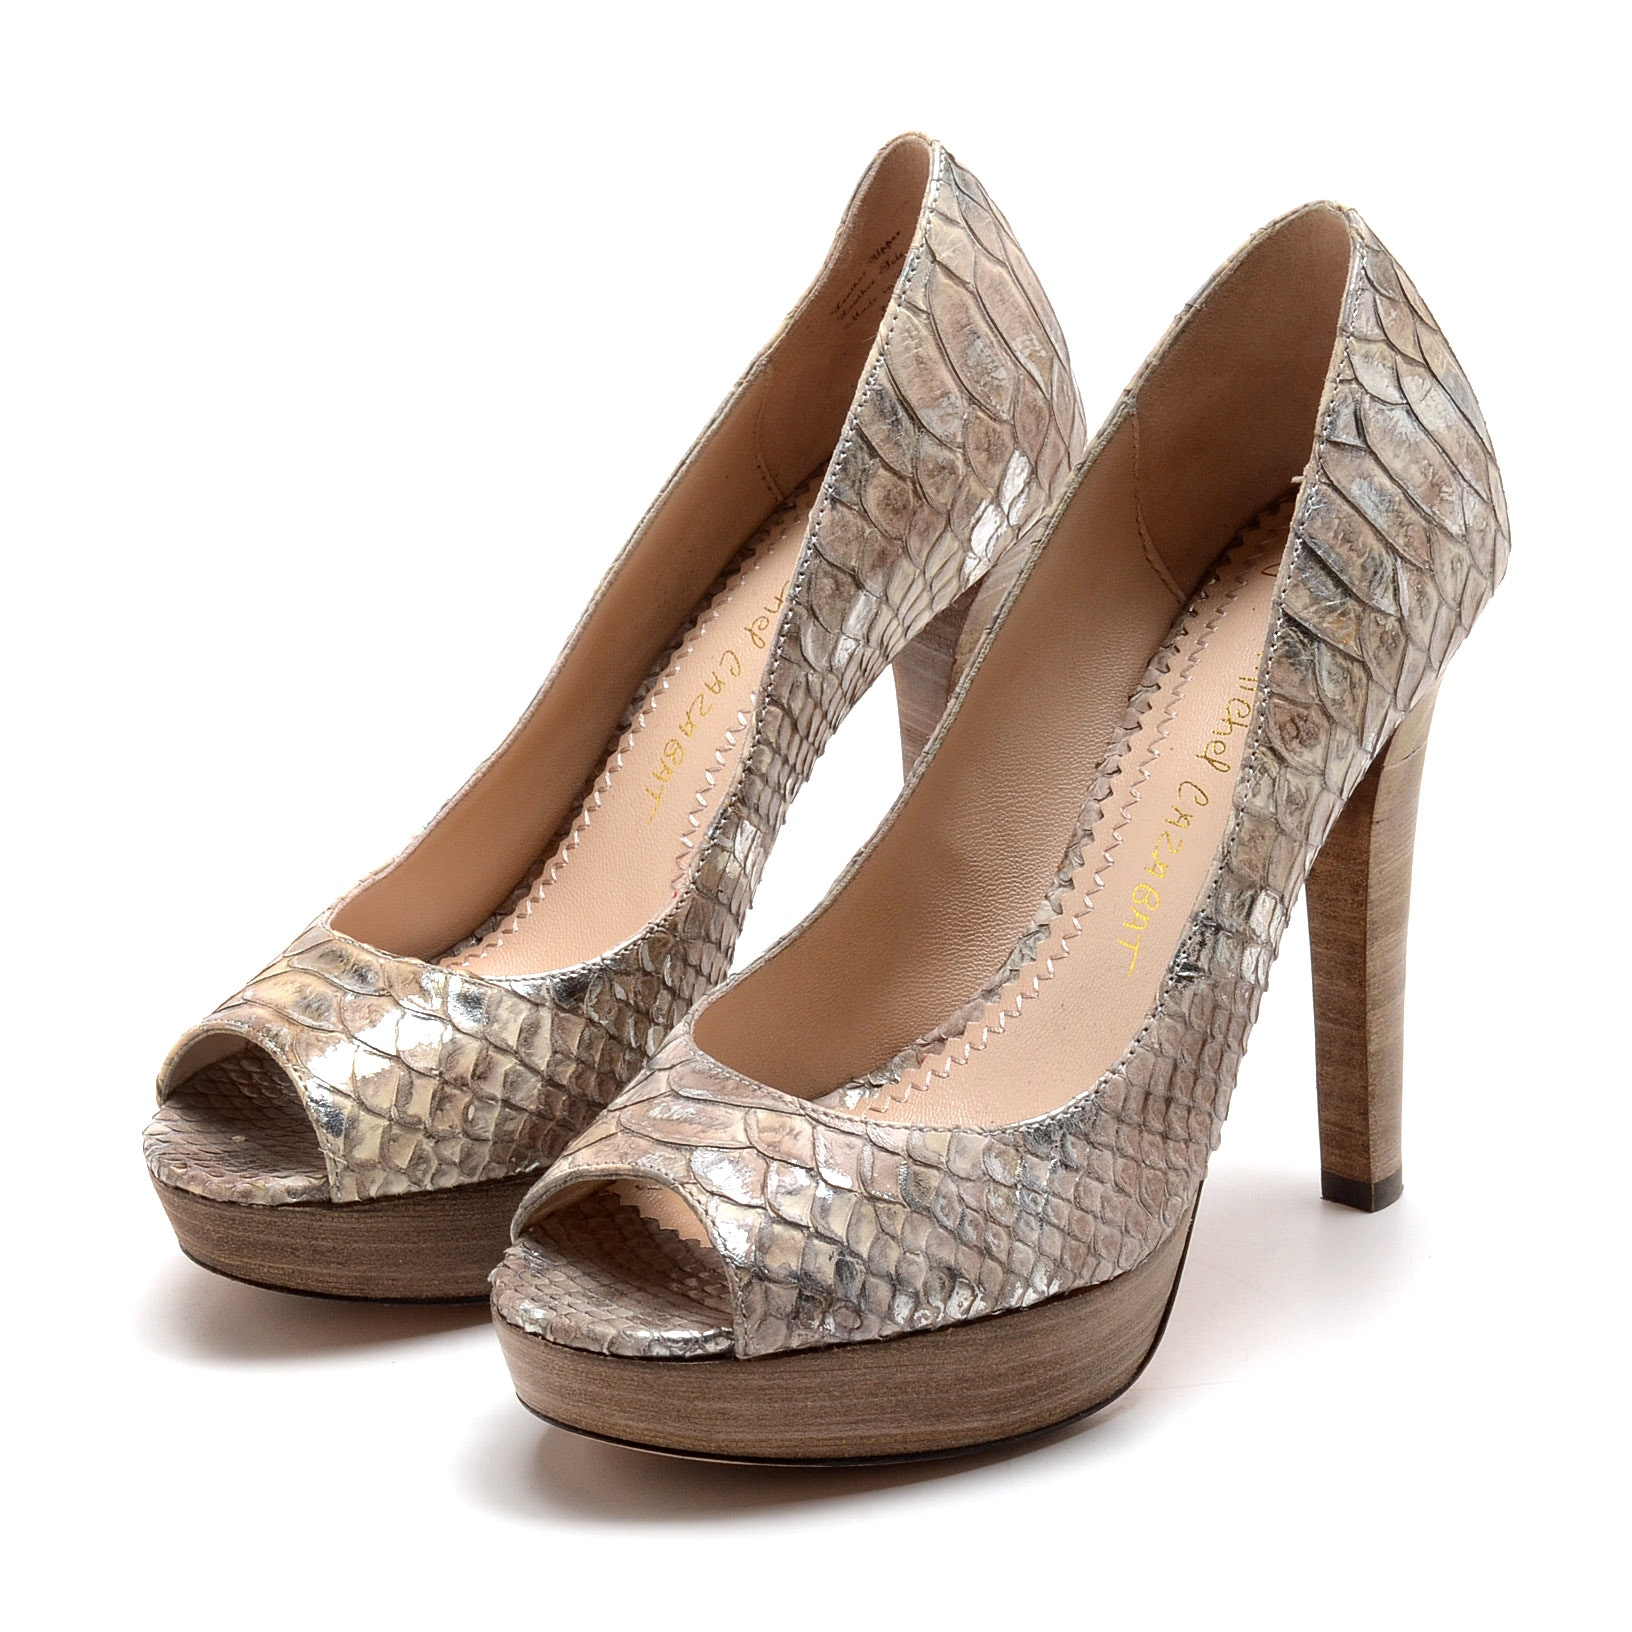 Jean-Michel Cazabat Python Leather Stiletto Platform Peep Toe Dress Pumps